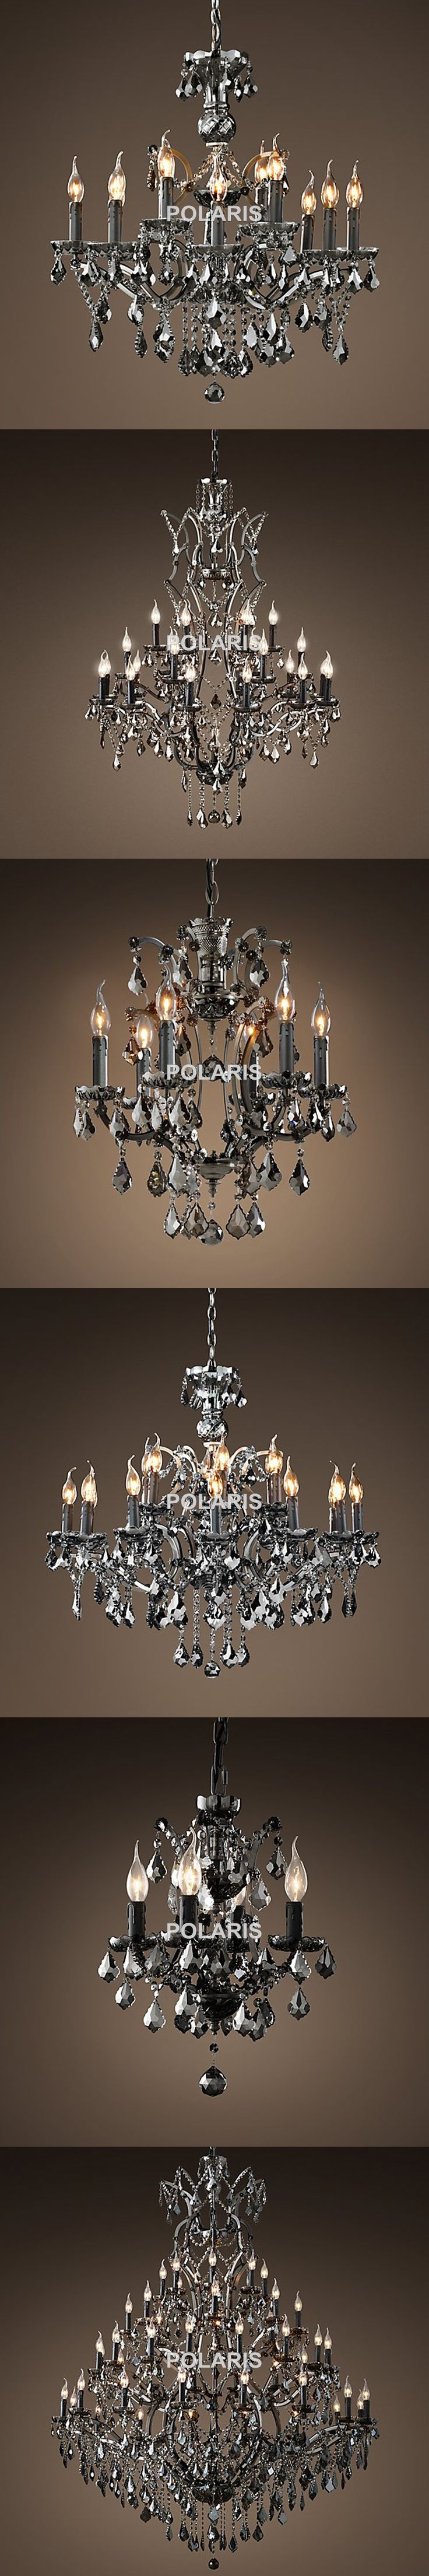 Best 25 Hanging candle chandelier ideas on Pinterest